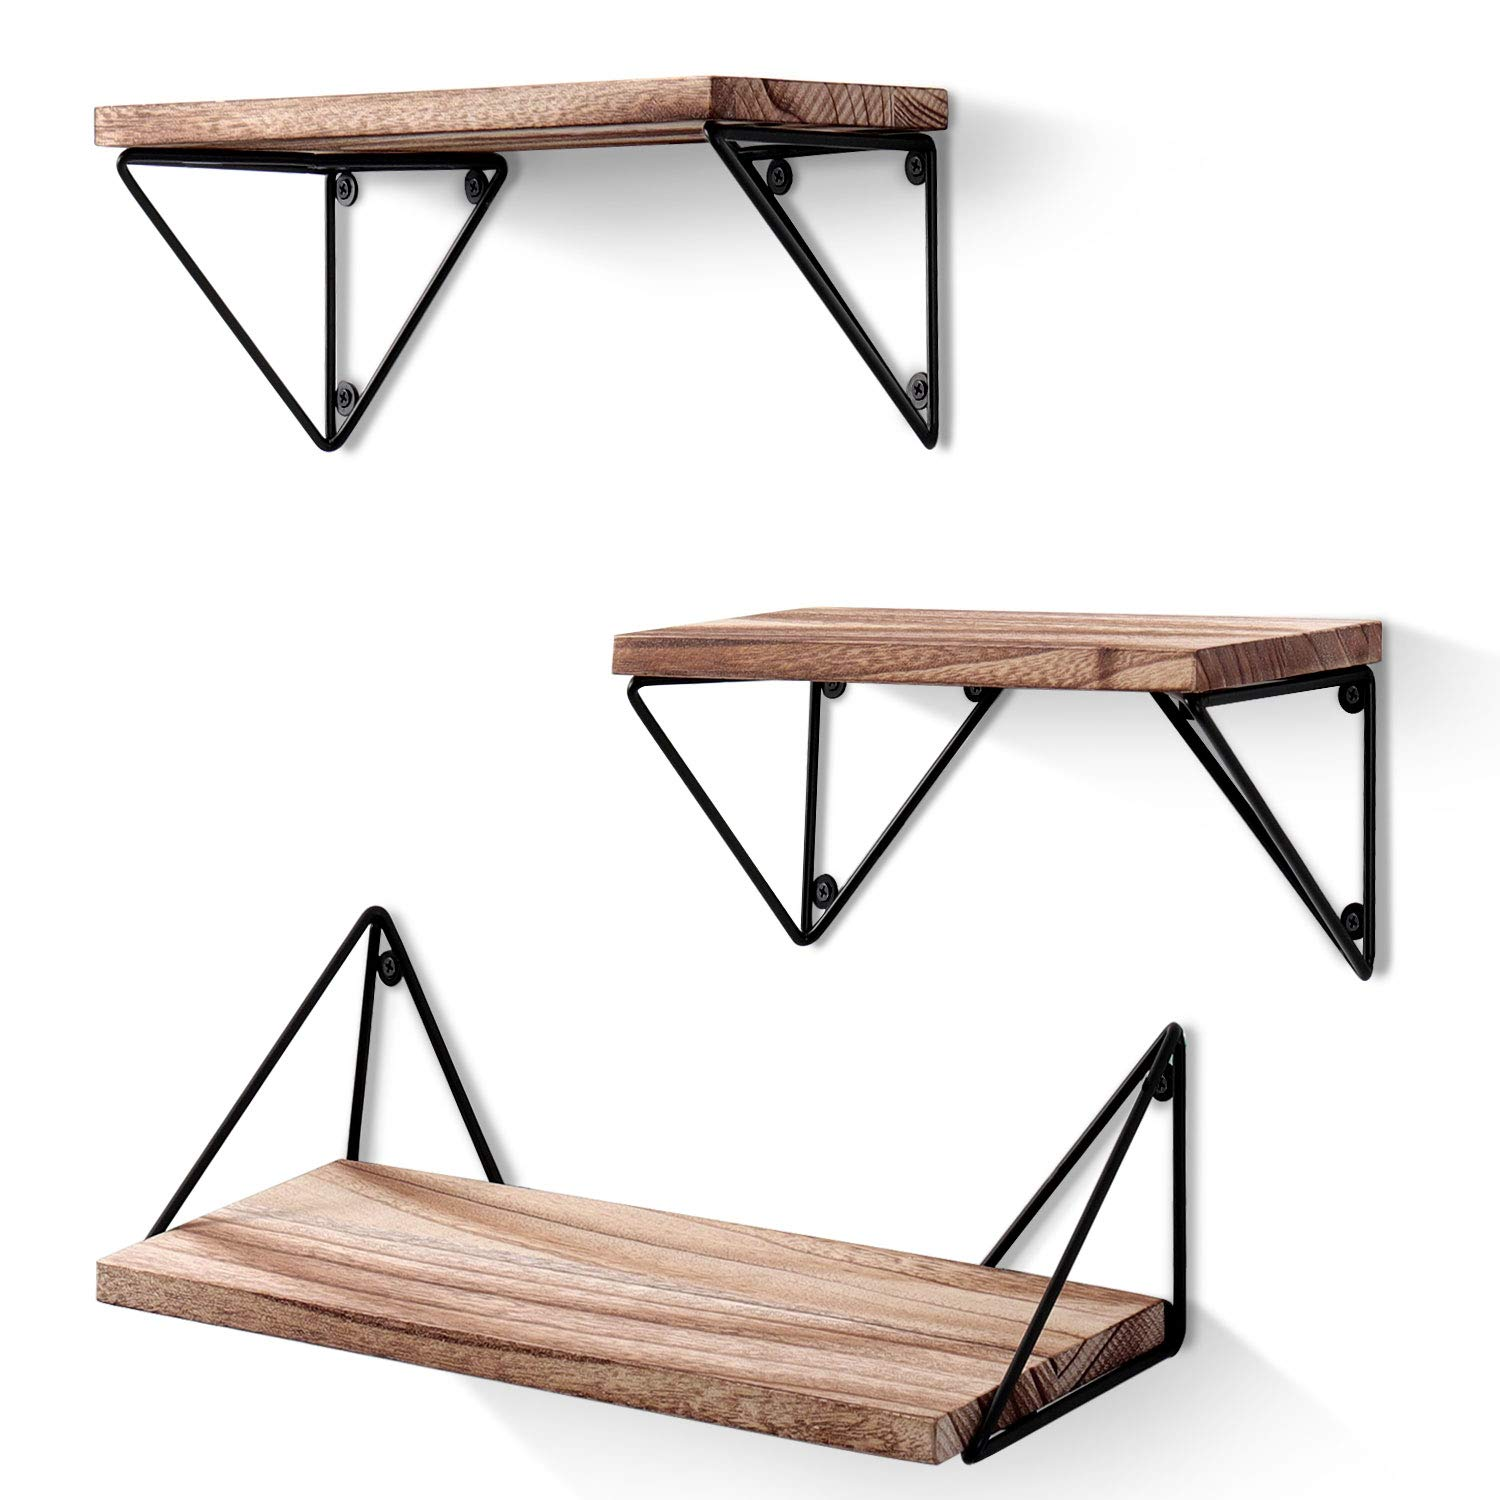 BAYKA Floating Shelves Wall Mounted Set of 3, Rustic Wood Wall Shelves for Living Room, Bedroom, Bathroom by BAYKA